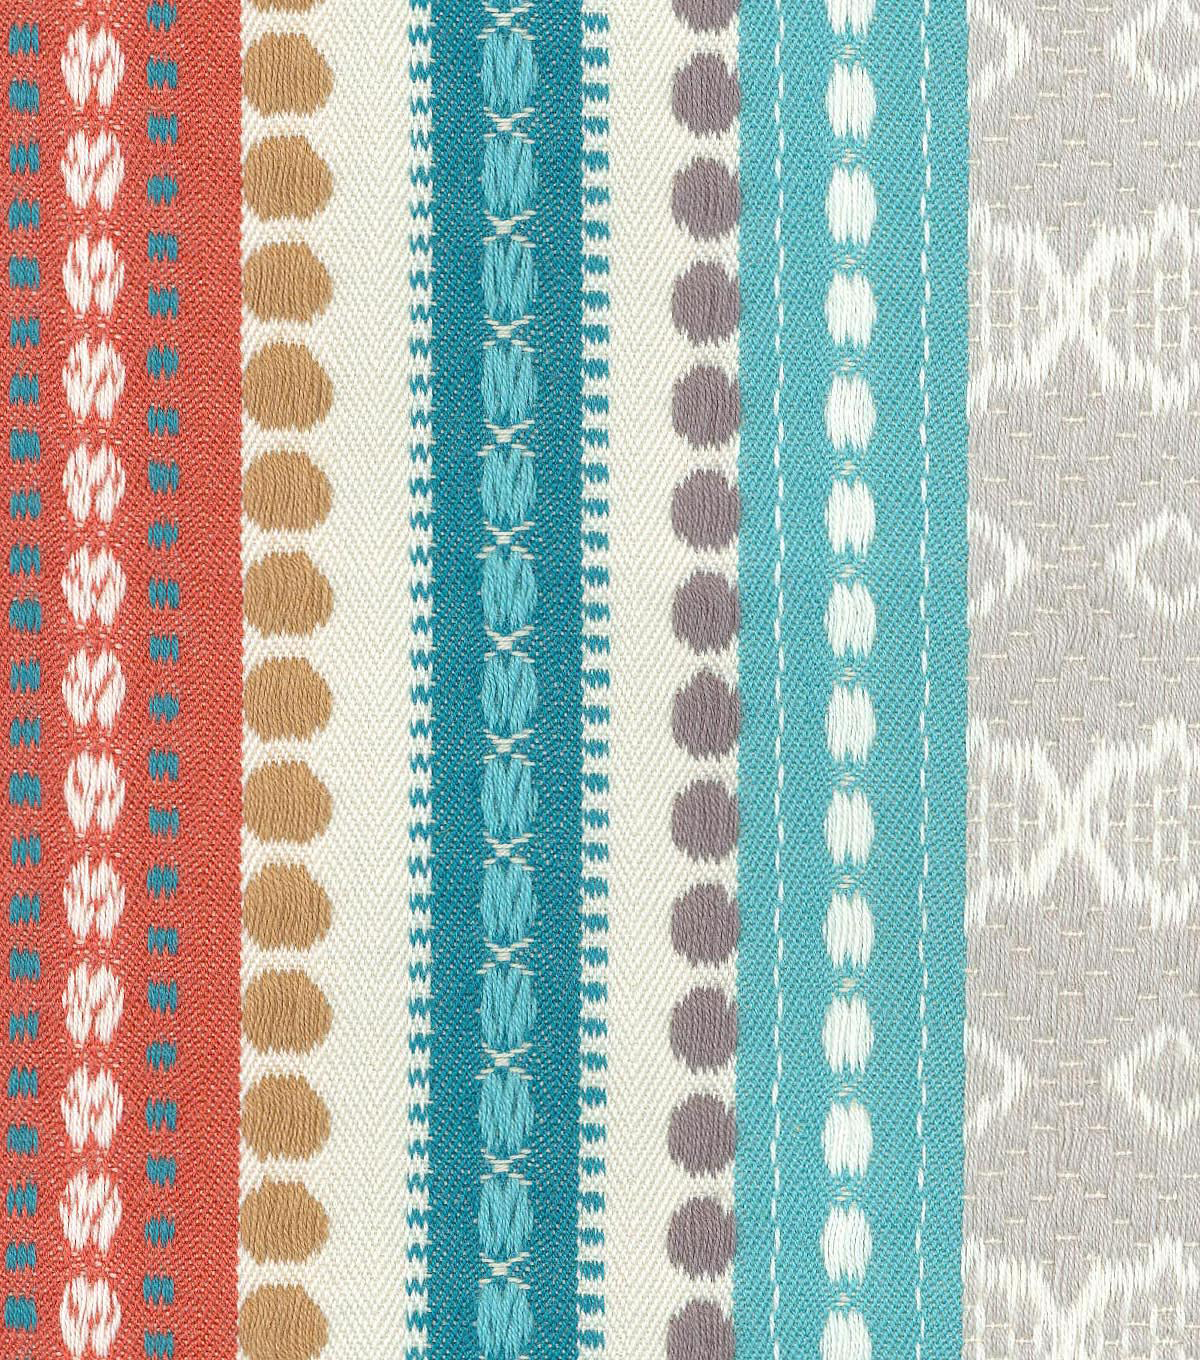 Genevieve Gorder Multi-Purpose Decor Fabric 54\u0027\u0027-Abodo Ancient Stripe